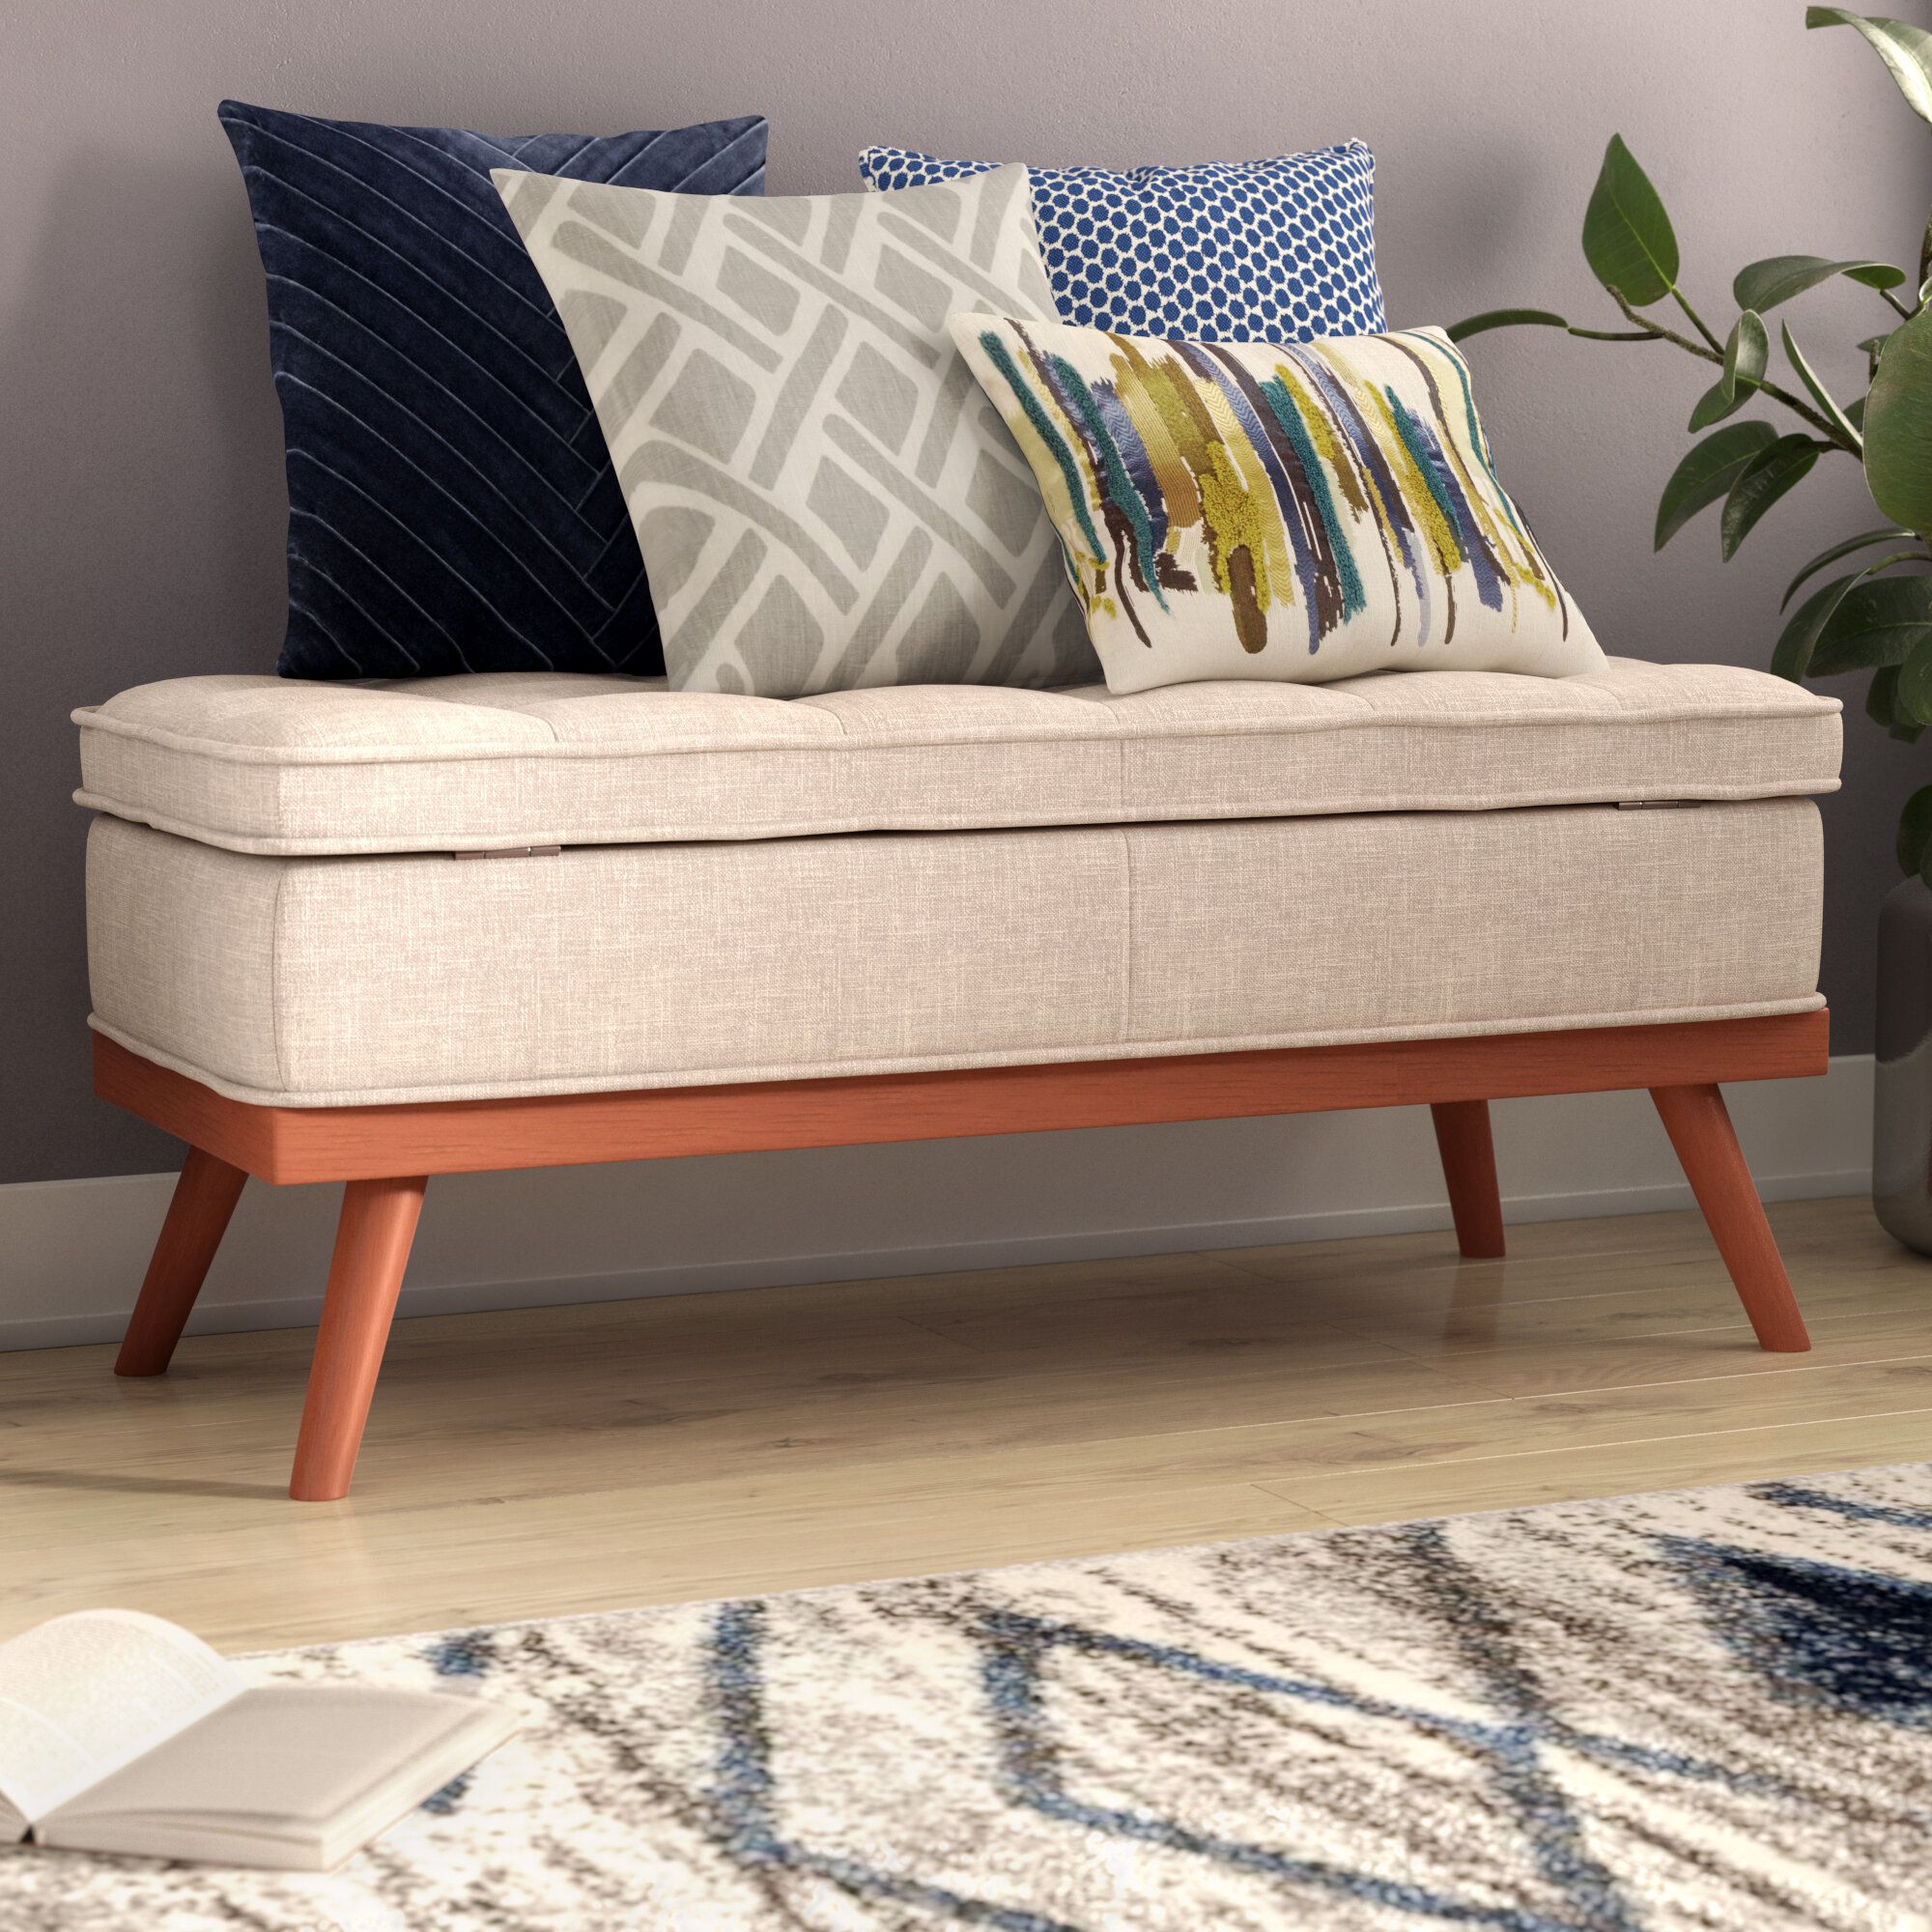 company beautiful olivie the for furniture designs lovely bed bedroom bench by co foot of